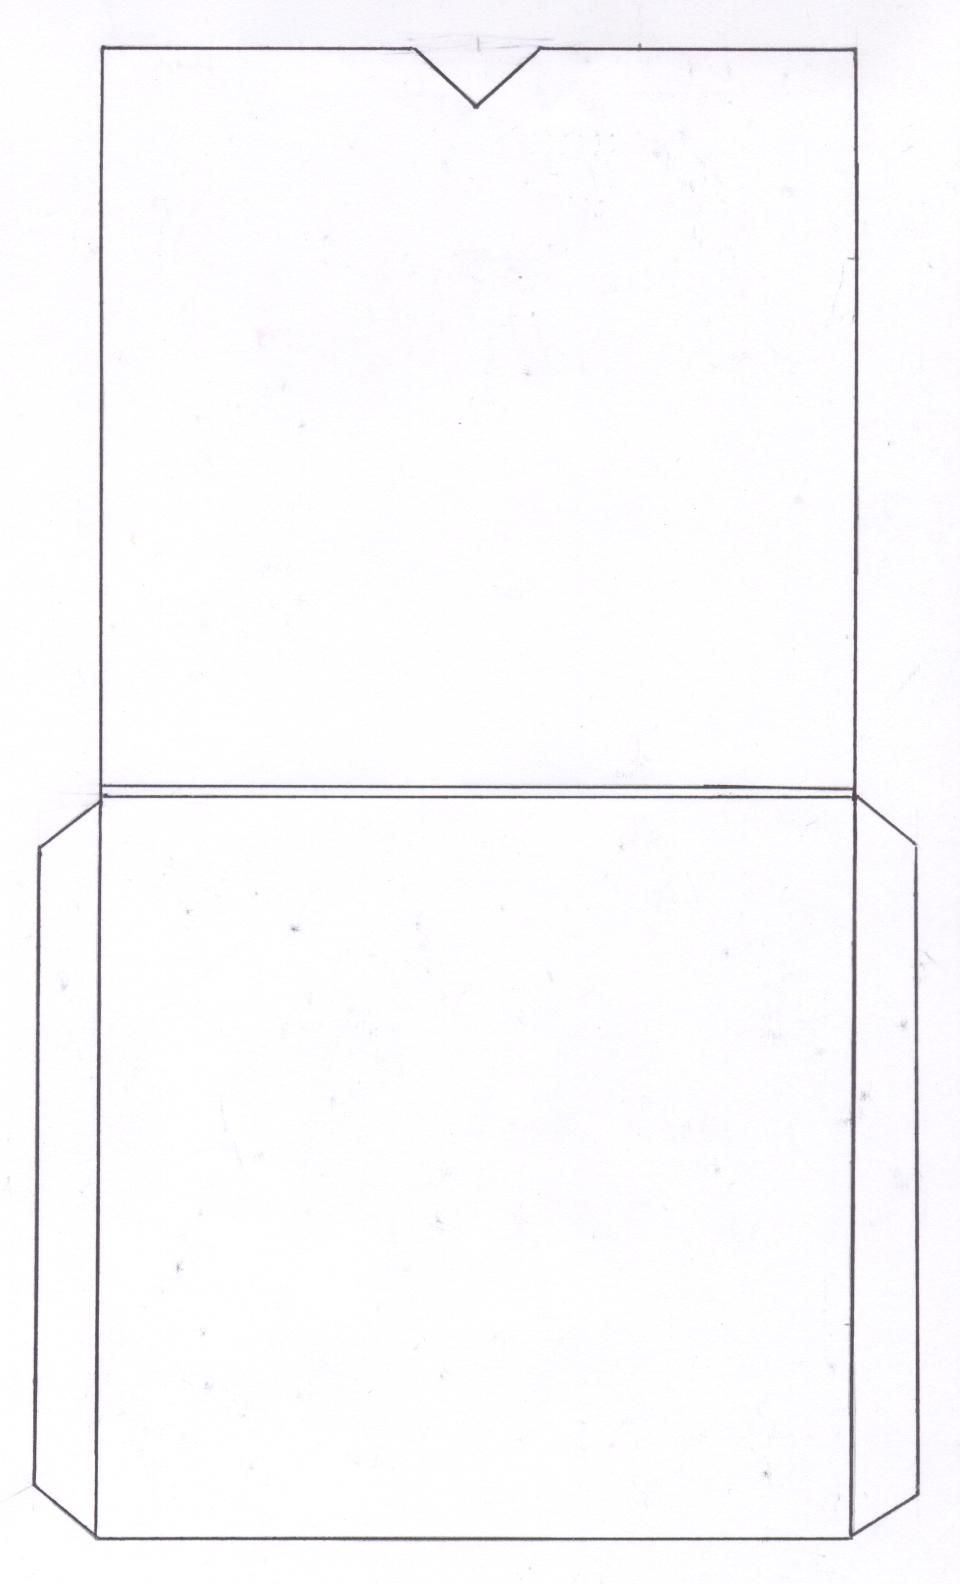 Blank Arm Template For Tattoo Blank Dvd Cover Template